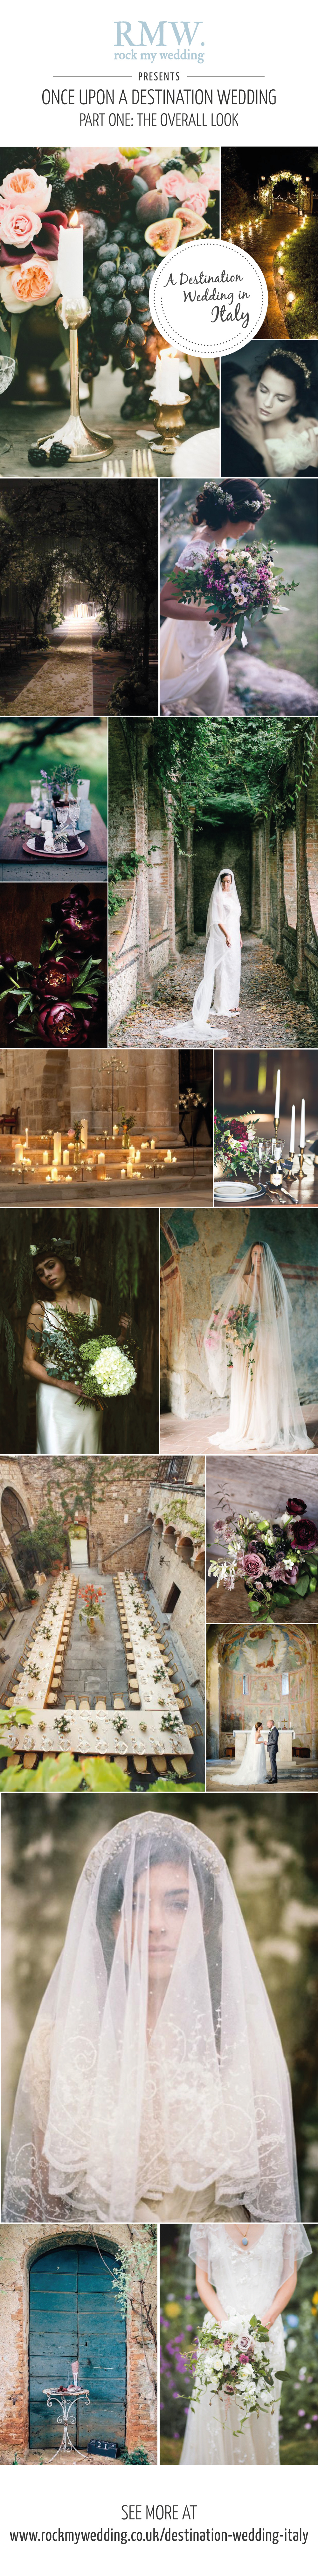 A Destination Wedding In Italy With A Romantic Gothic Theme